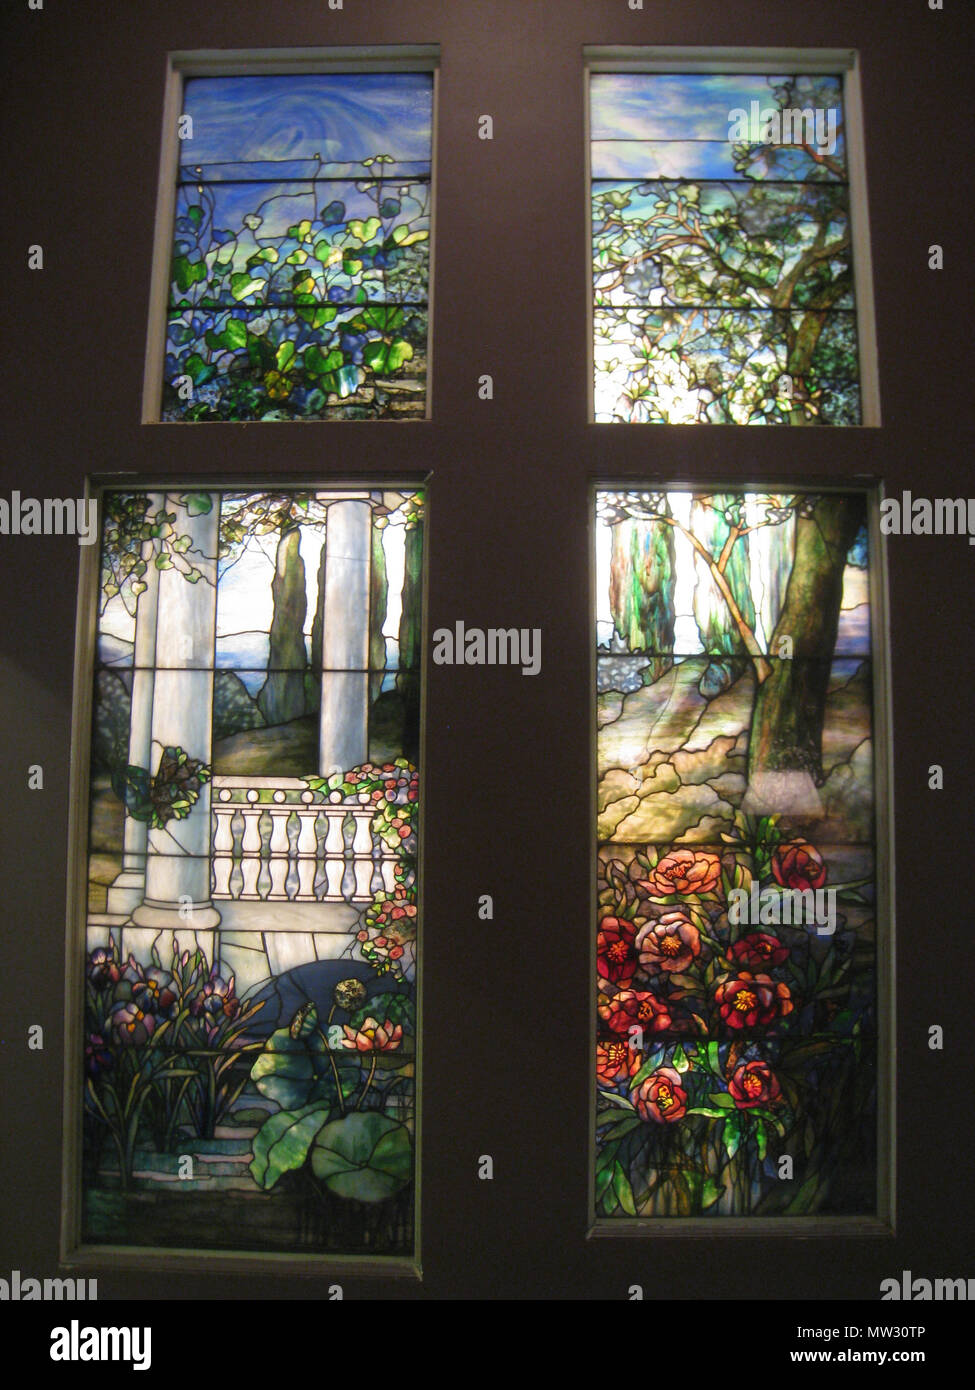 . Louis Comfort Tiffany stained glass, Carnegie Museum of Art, Pittsburgh, Pennsylvania, USA. 10 October 2009. Window by studio of Louis Comfort Tiffany; I took this photograph. 377 Louis Comfort Tiffany stained glass, Carnegie Museum of Art, Pittsburgh - IMG 0630 Stock Photo